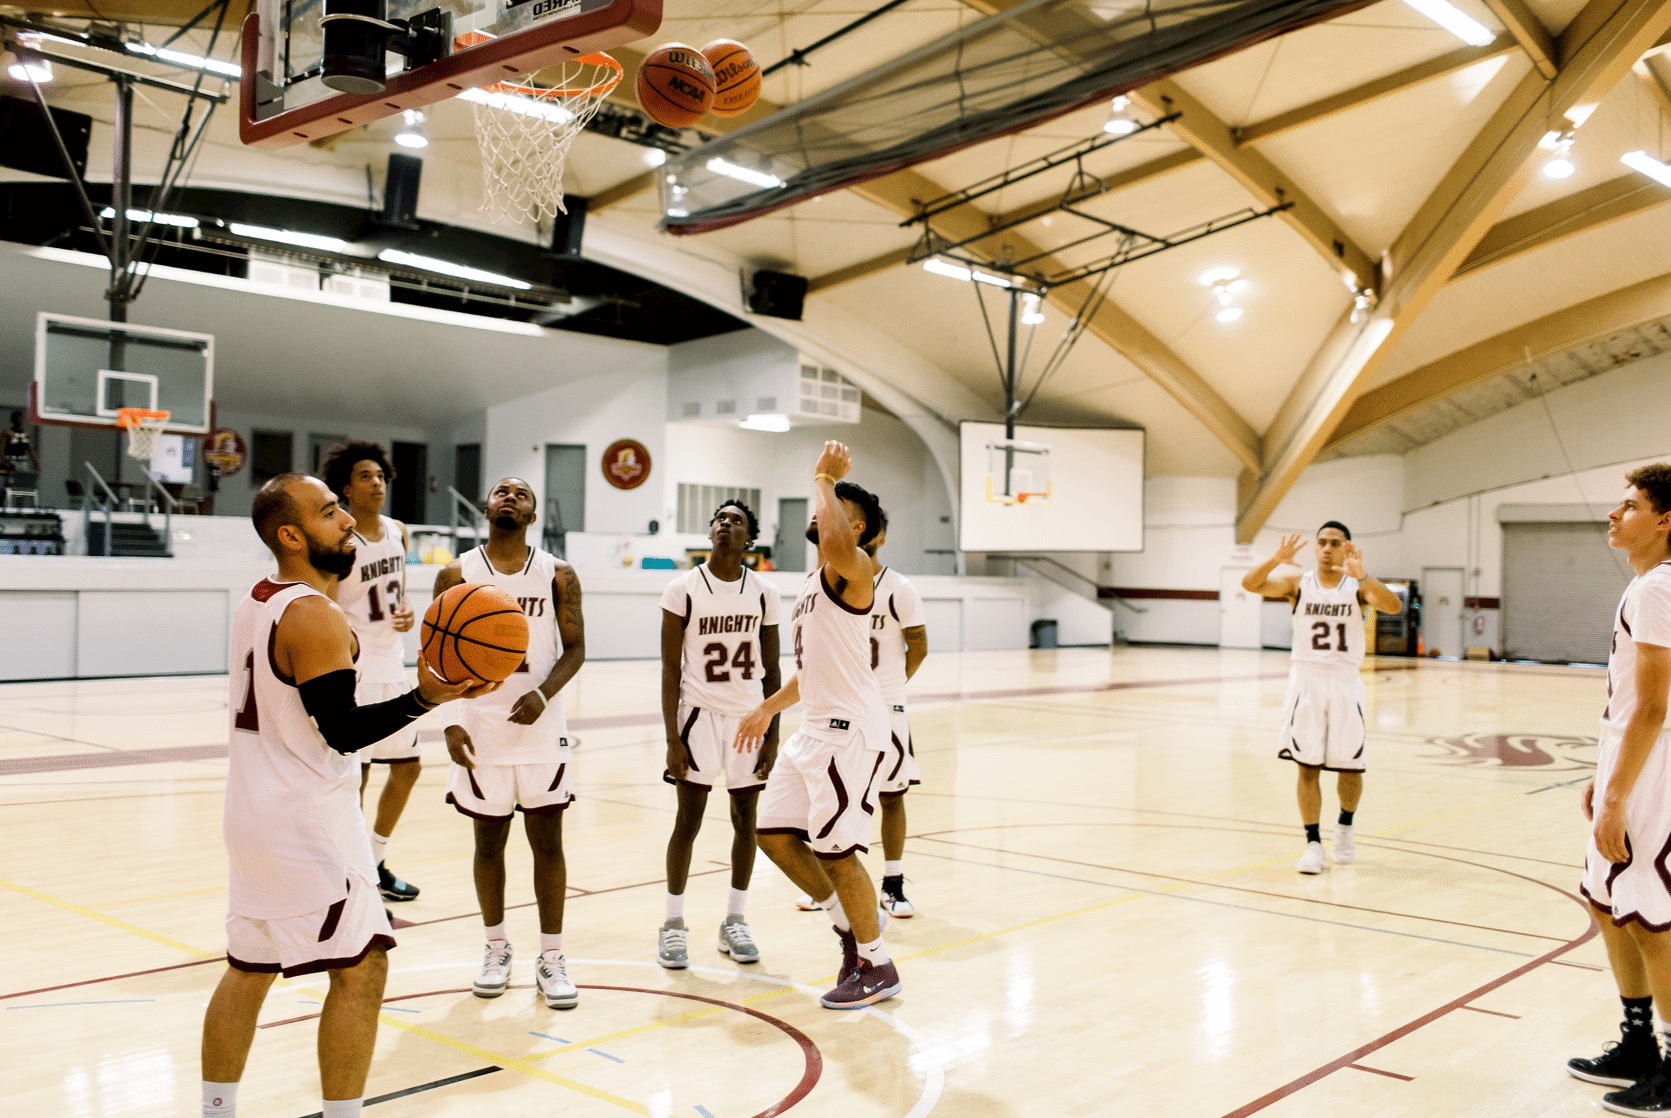 A group of male basketball players gather in the gymnasium wearing their uniforms as thye throw balls into the hoop and look around